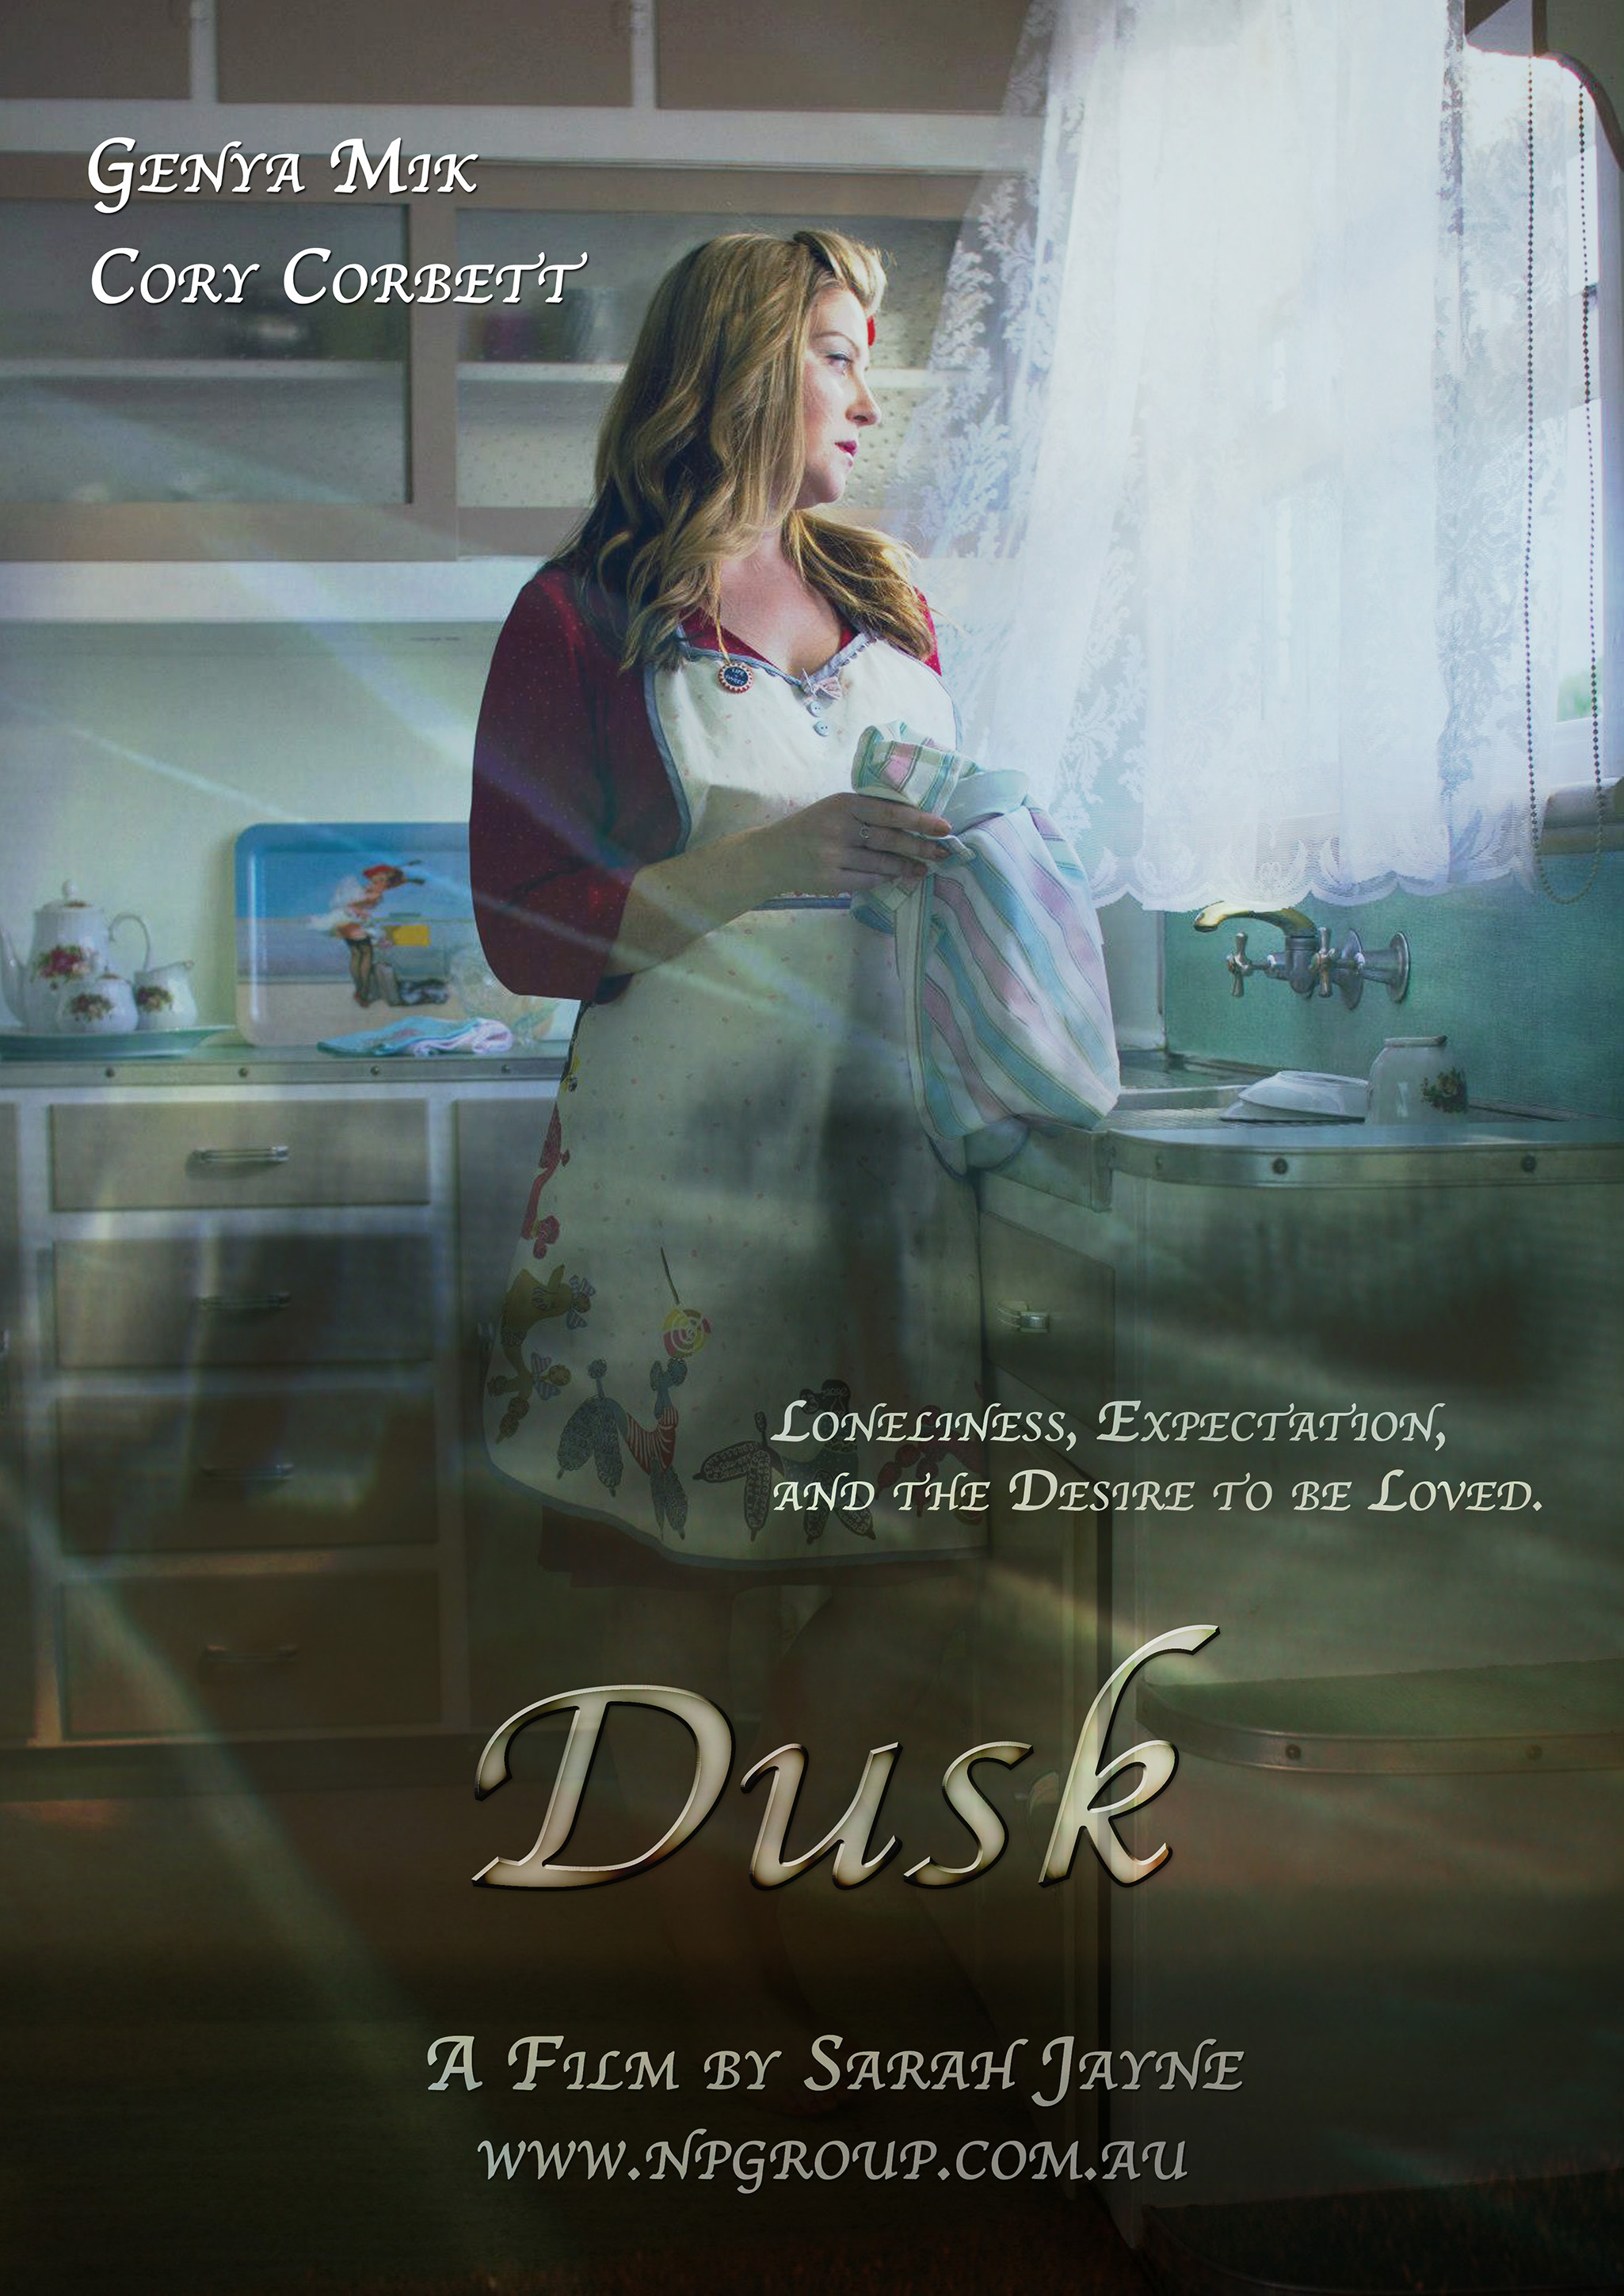 A disconnected &lonely woman struggles to fit society's mould - Dusk is an exploration of self image, self worth, the basic human need to connect.